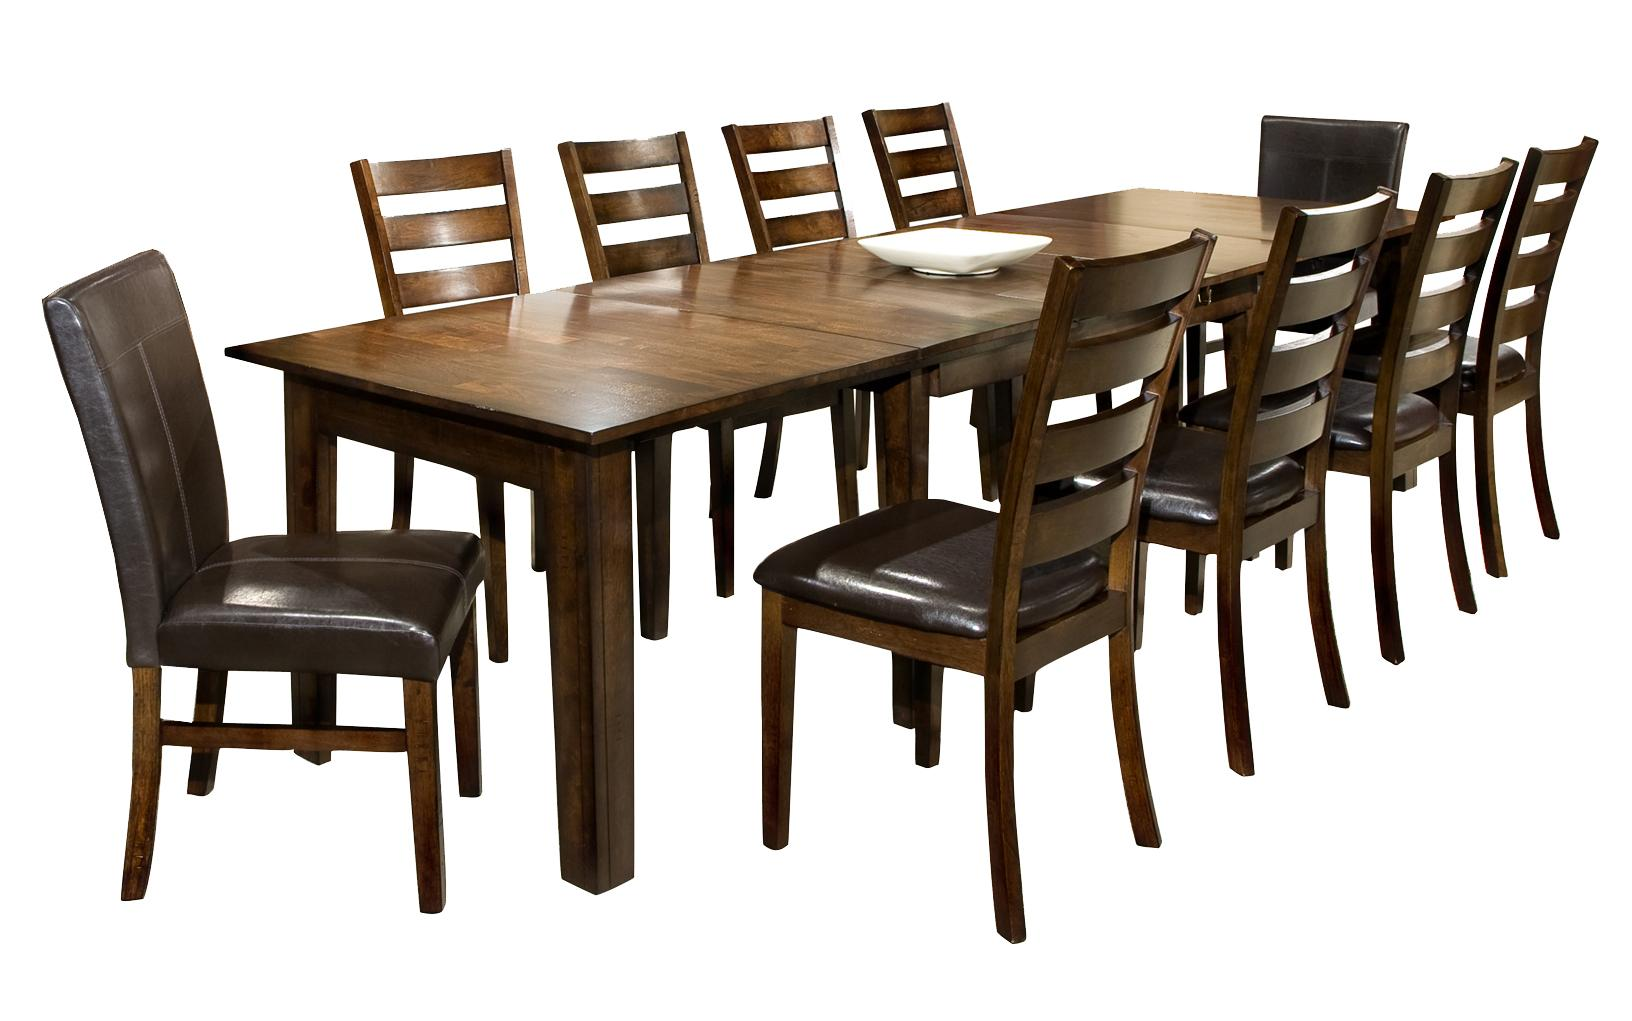 11 Piece Dining Room Set Intercon Kona 11 Piece Dining Set With Table And Chairs Wayside